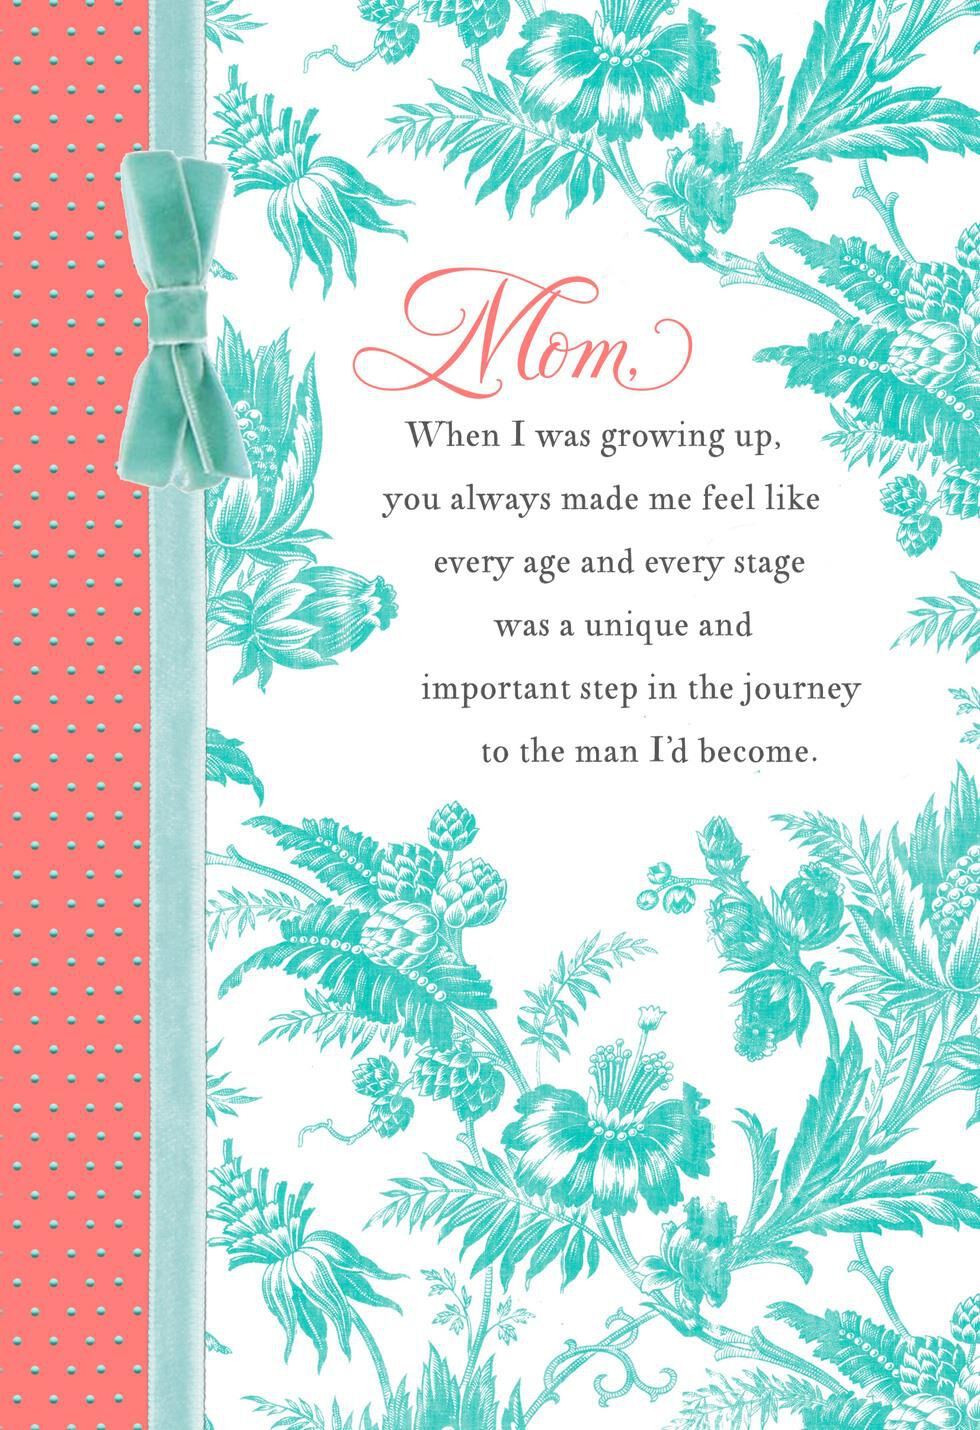 Toile Print Birthday Card for Mom From Son - Greeting ...